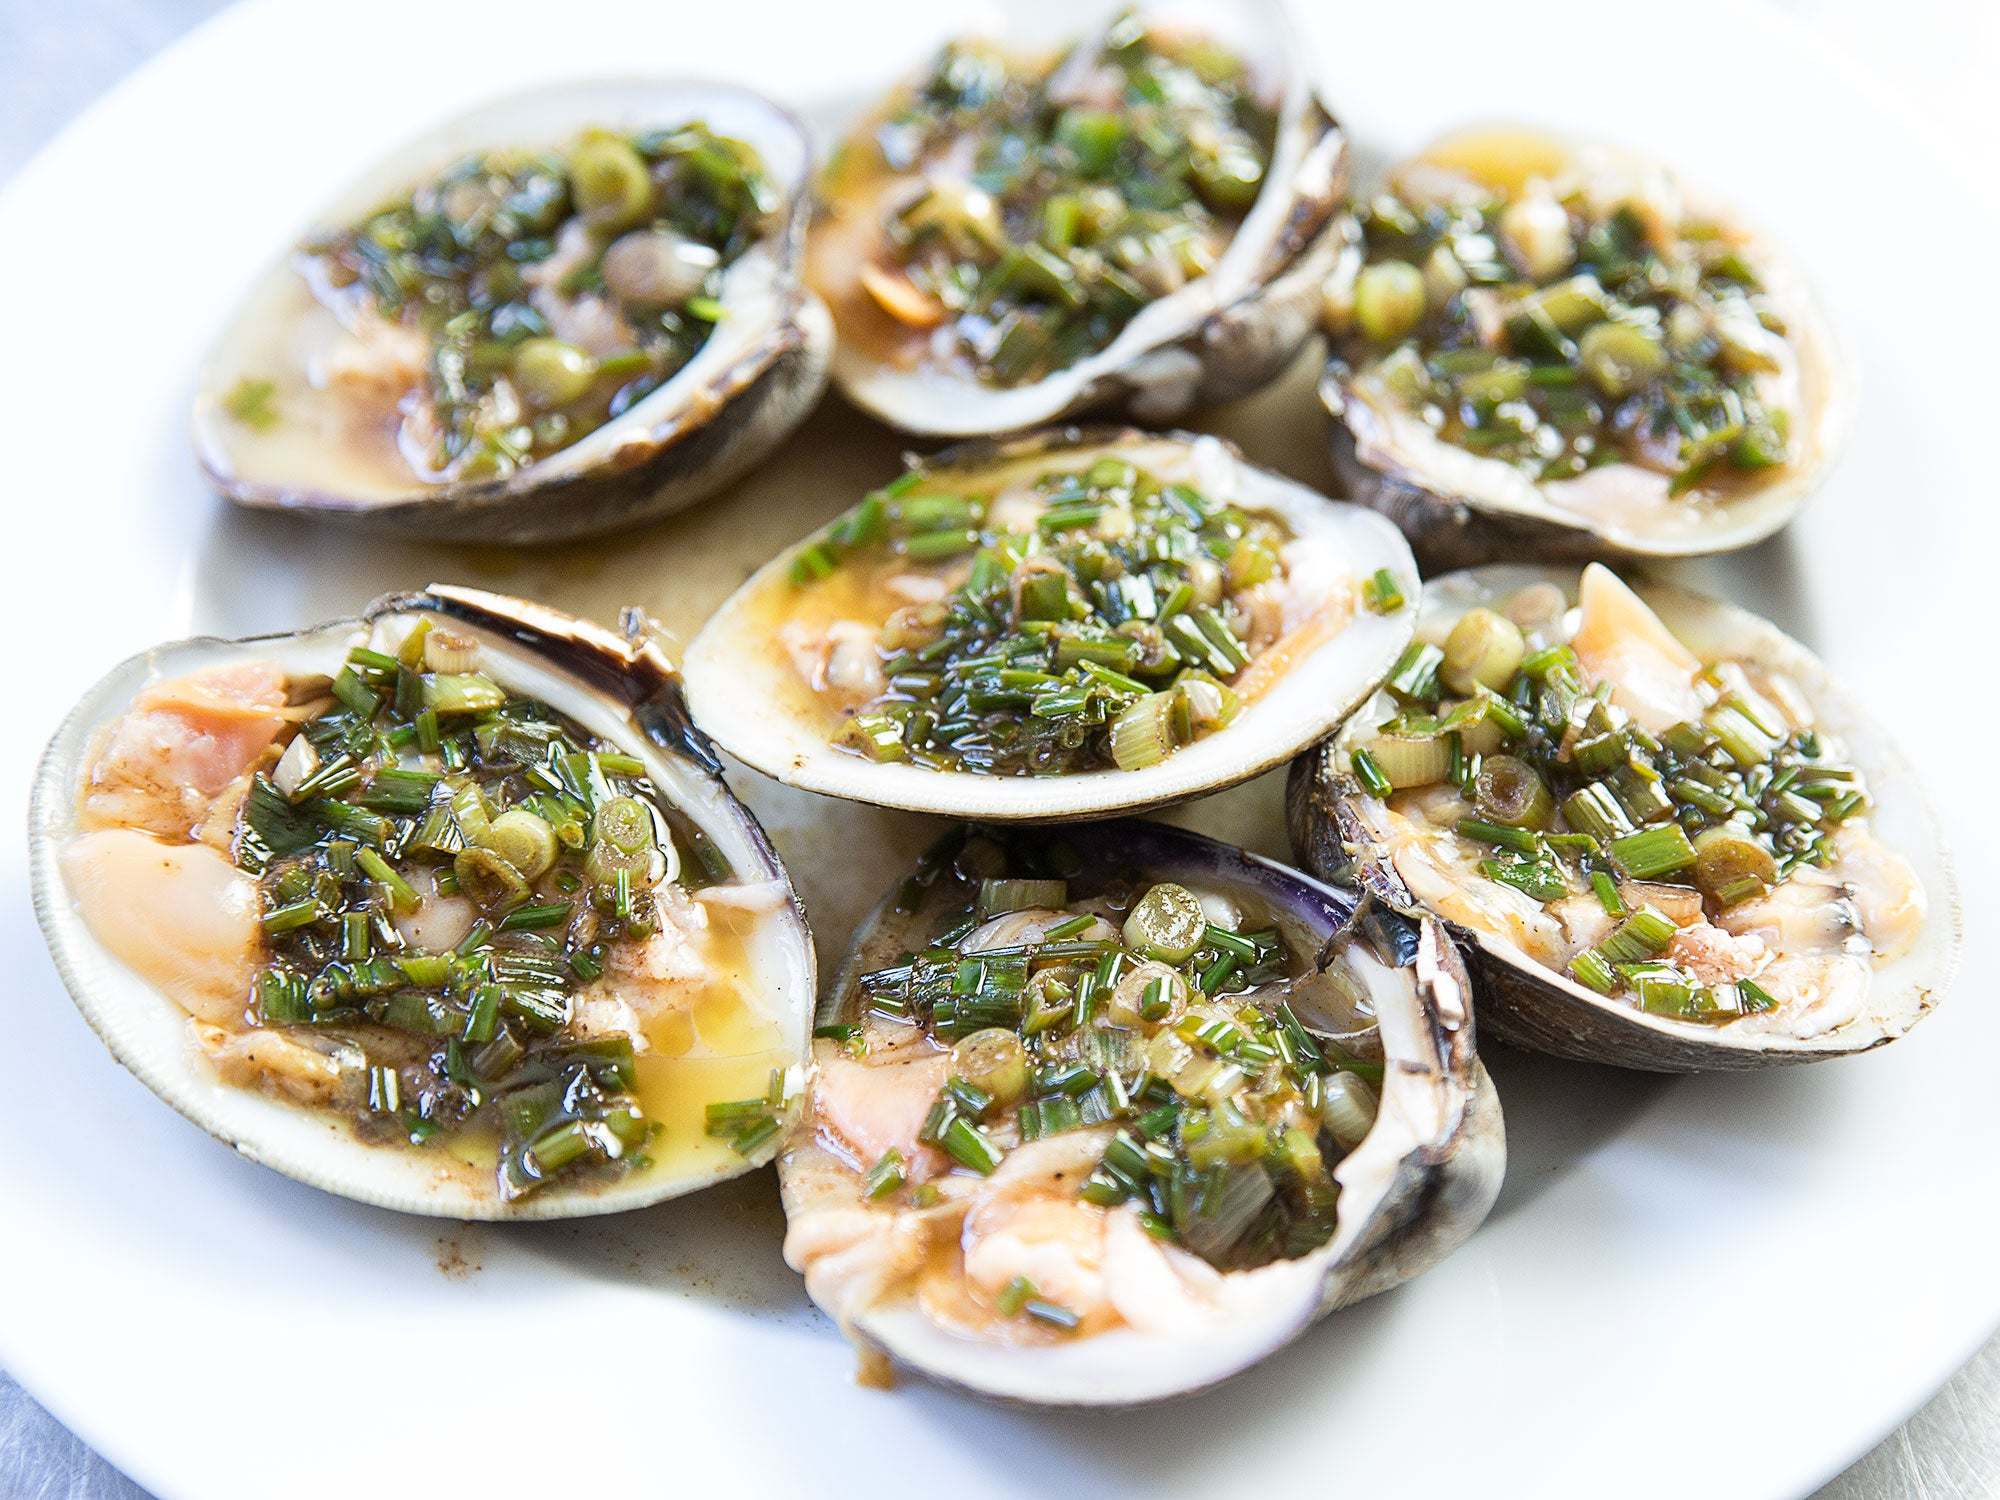 Jacques Pépin's Trick for Shucking Clams Without the Hassle